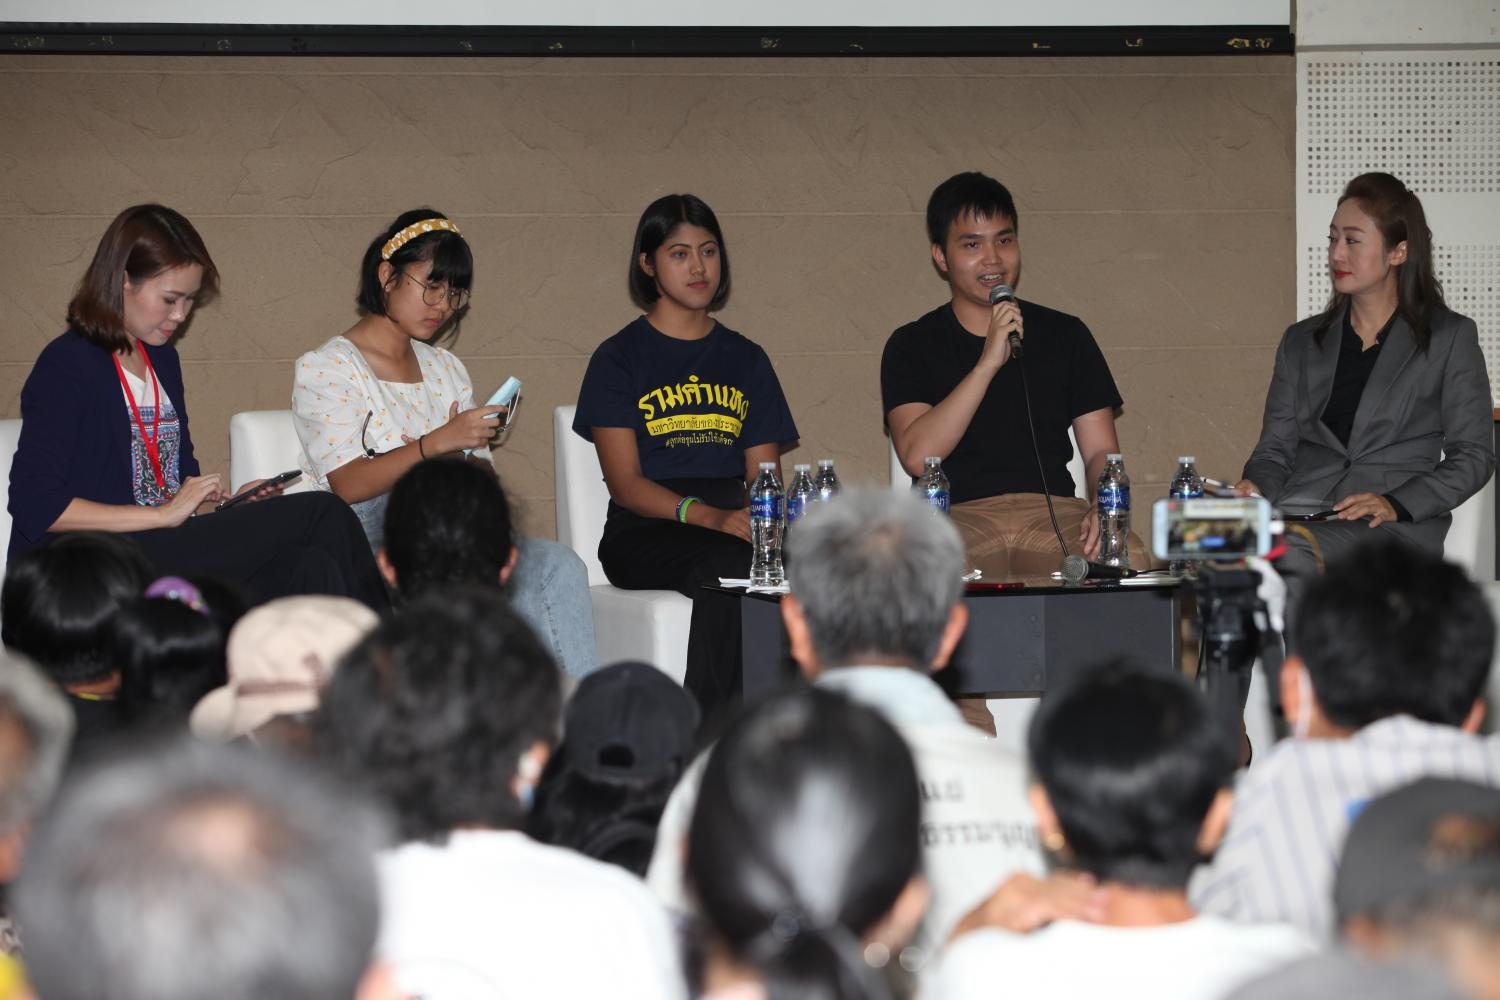 Discussing politics: FPG leader Tattep Ruangprapaikitseree, second from right, speaks to attendees at a forum titled 'Youths and Politics' at the October 14 Monument at the Khok Wua intersection on Ratchadamnoen Klang Avenue on Saturday.